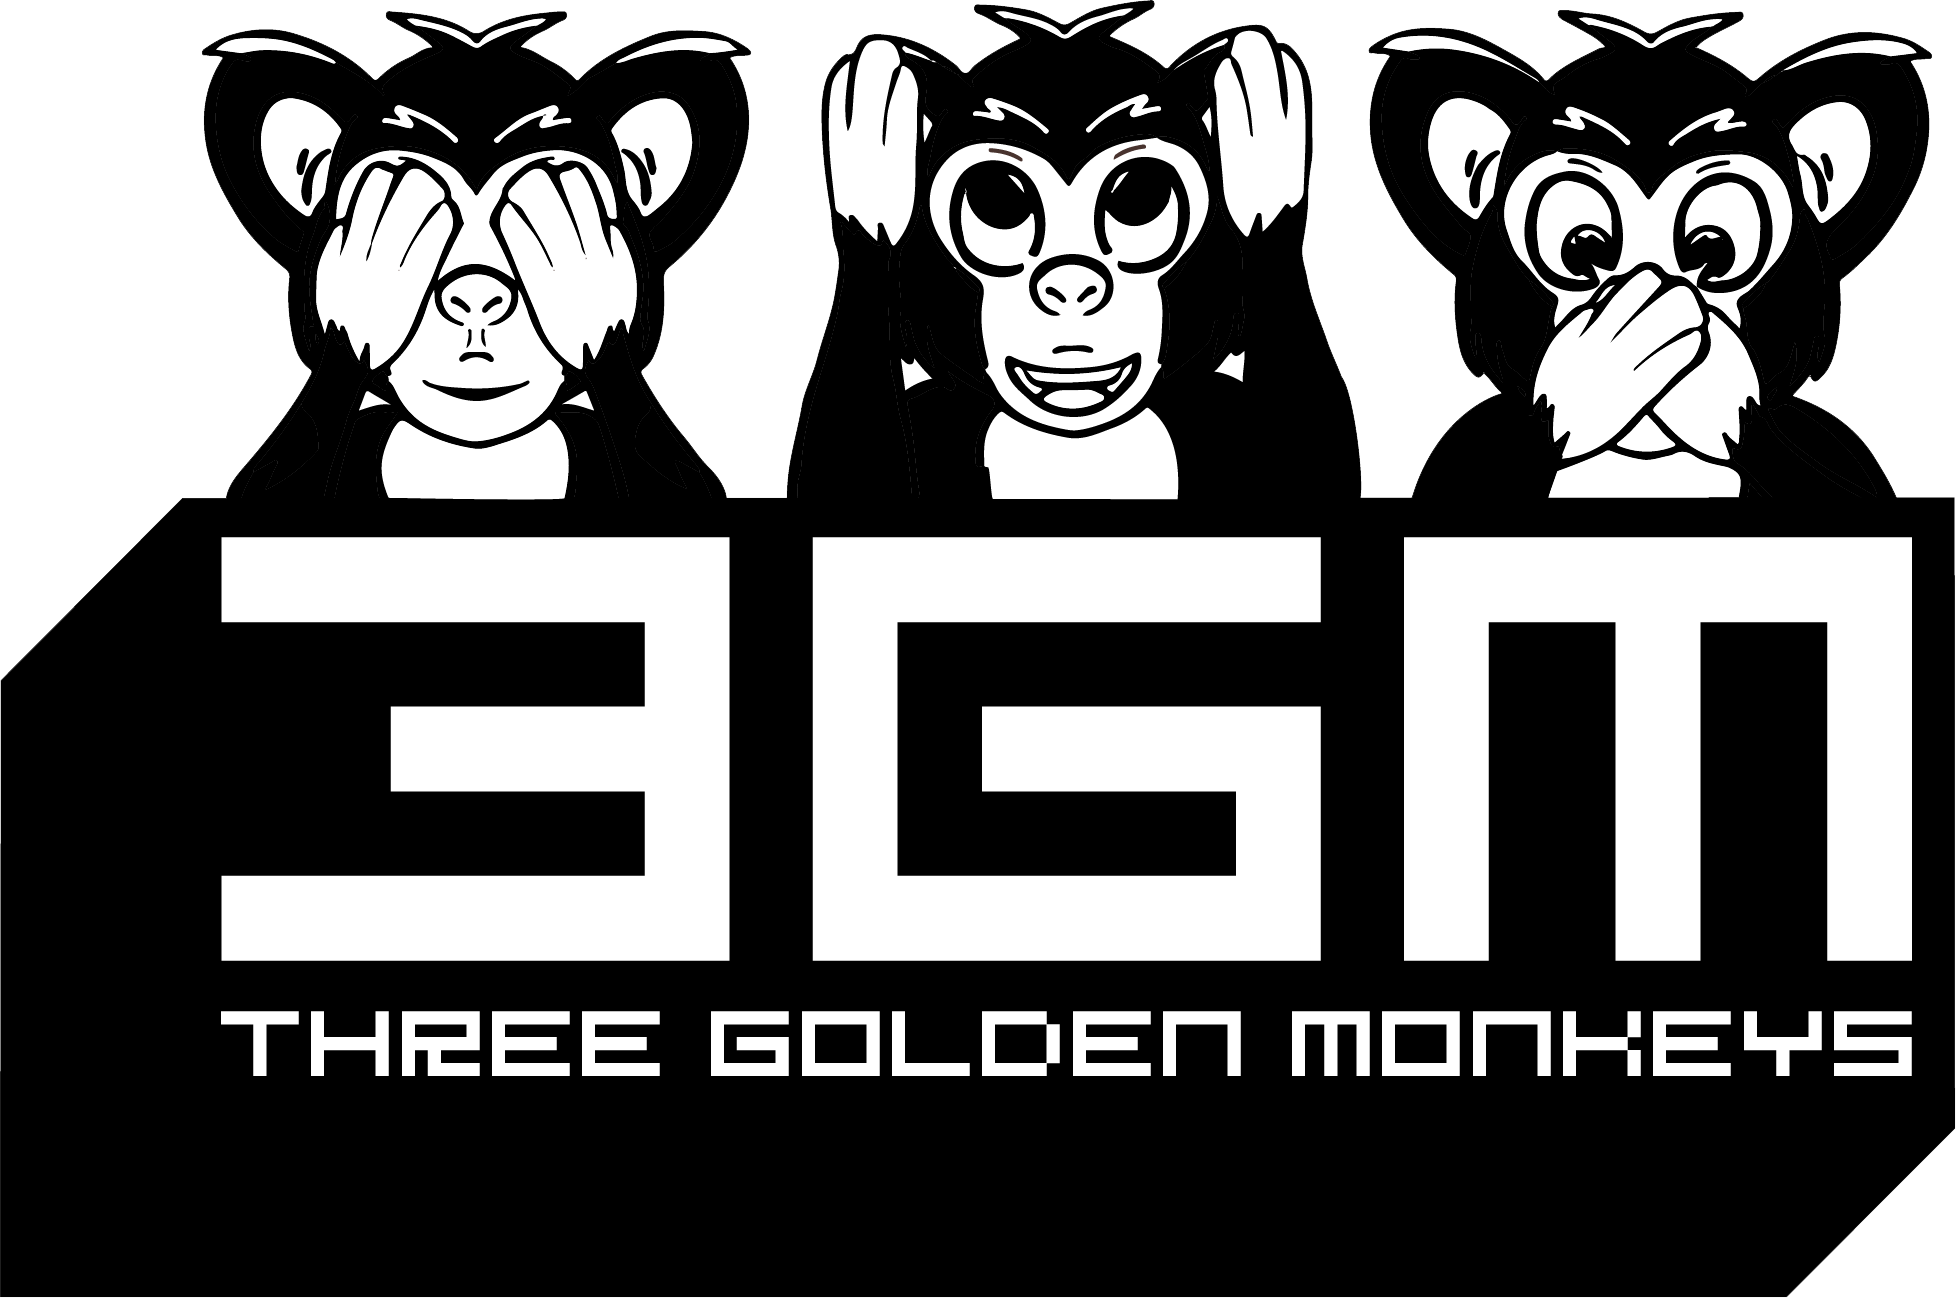 Juego de lucha callejera inmortal - Club Kombat - Three Golden Monkeys Lab